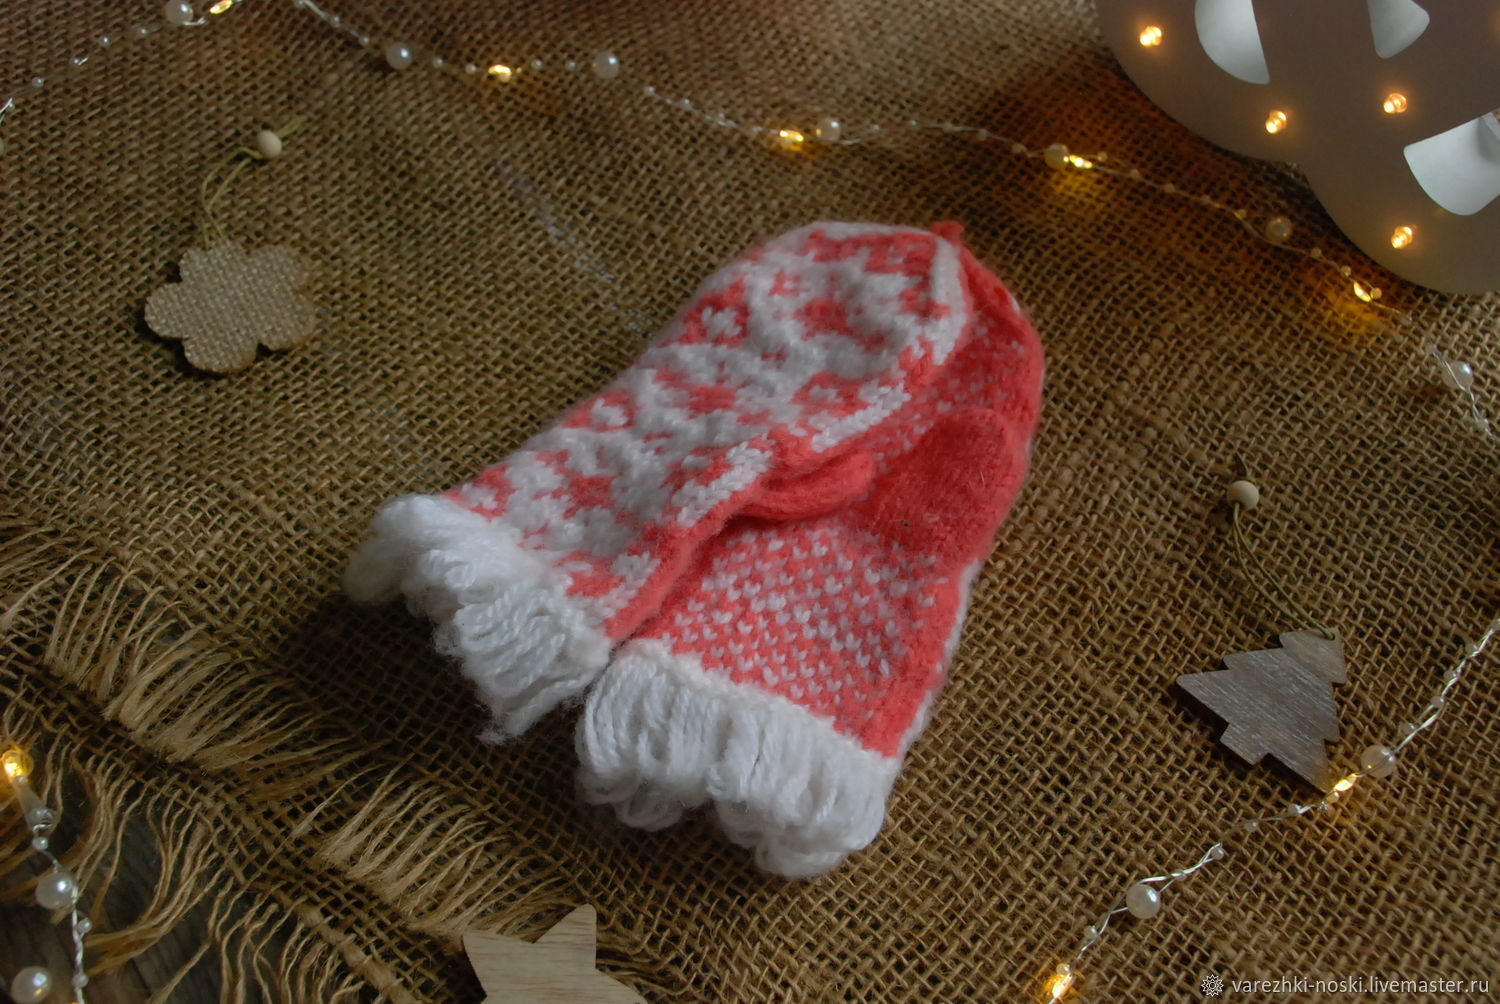 Mittens white with geometric designs and fringe, Mittens, Moscow,  Фото №1